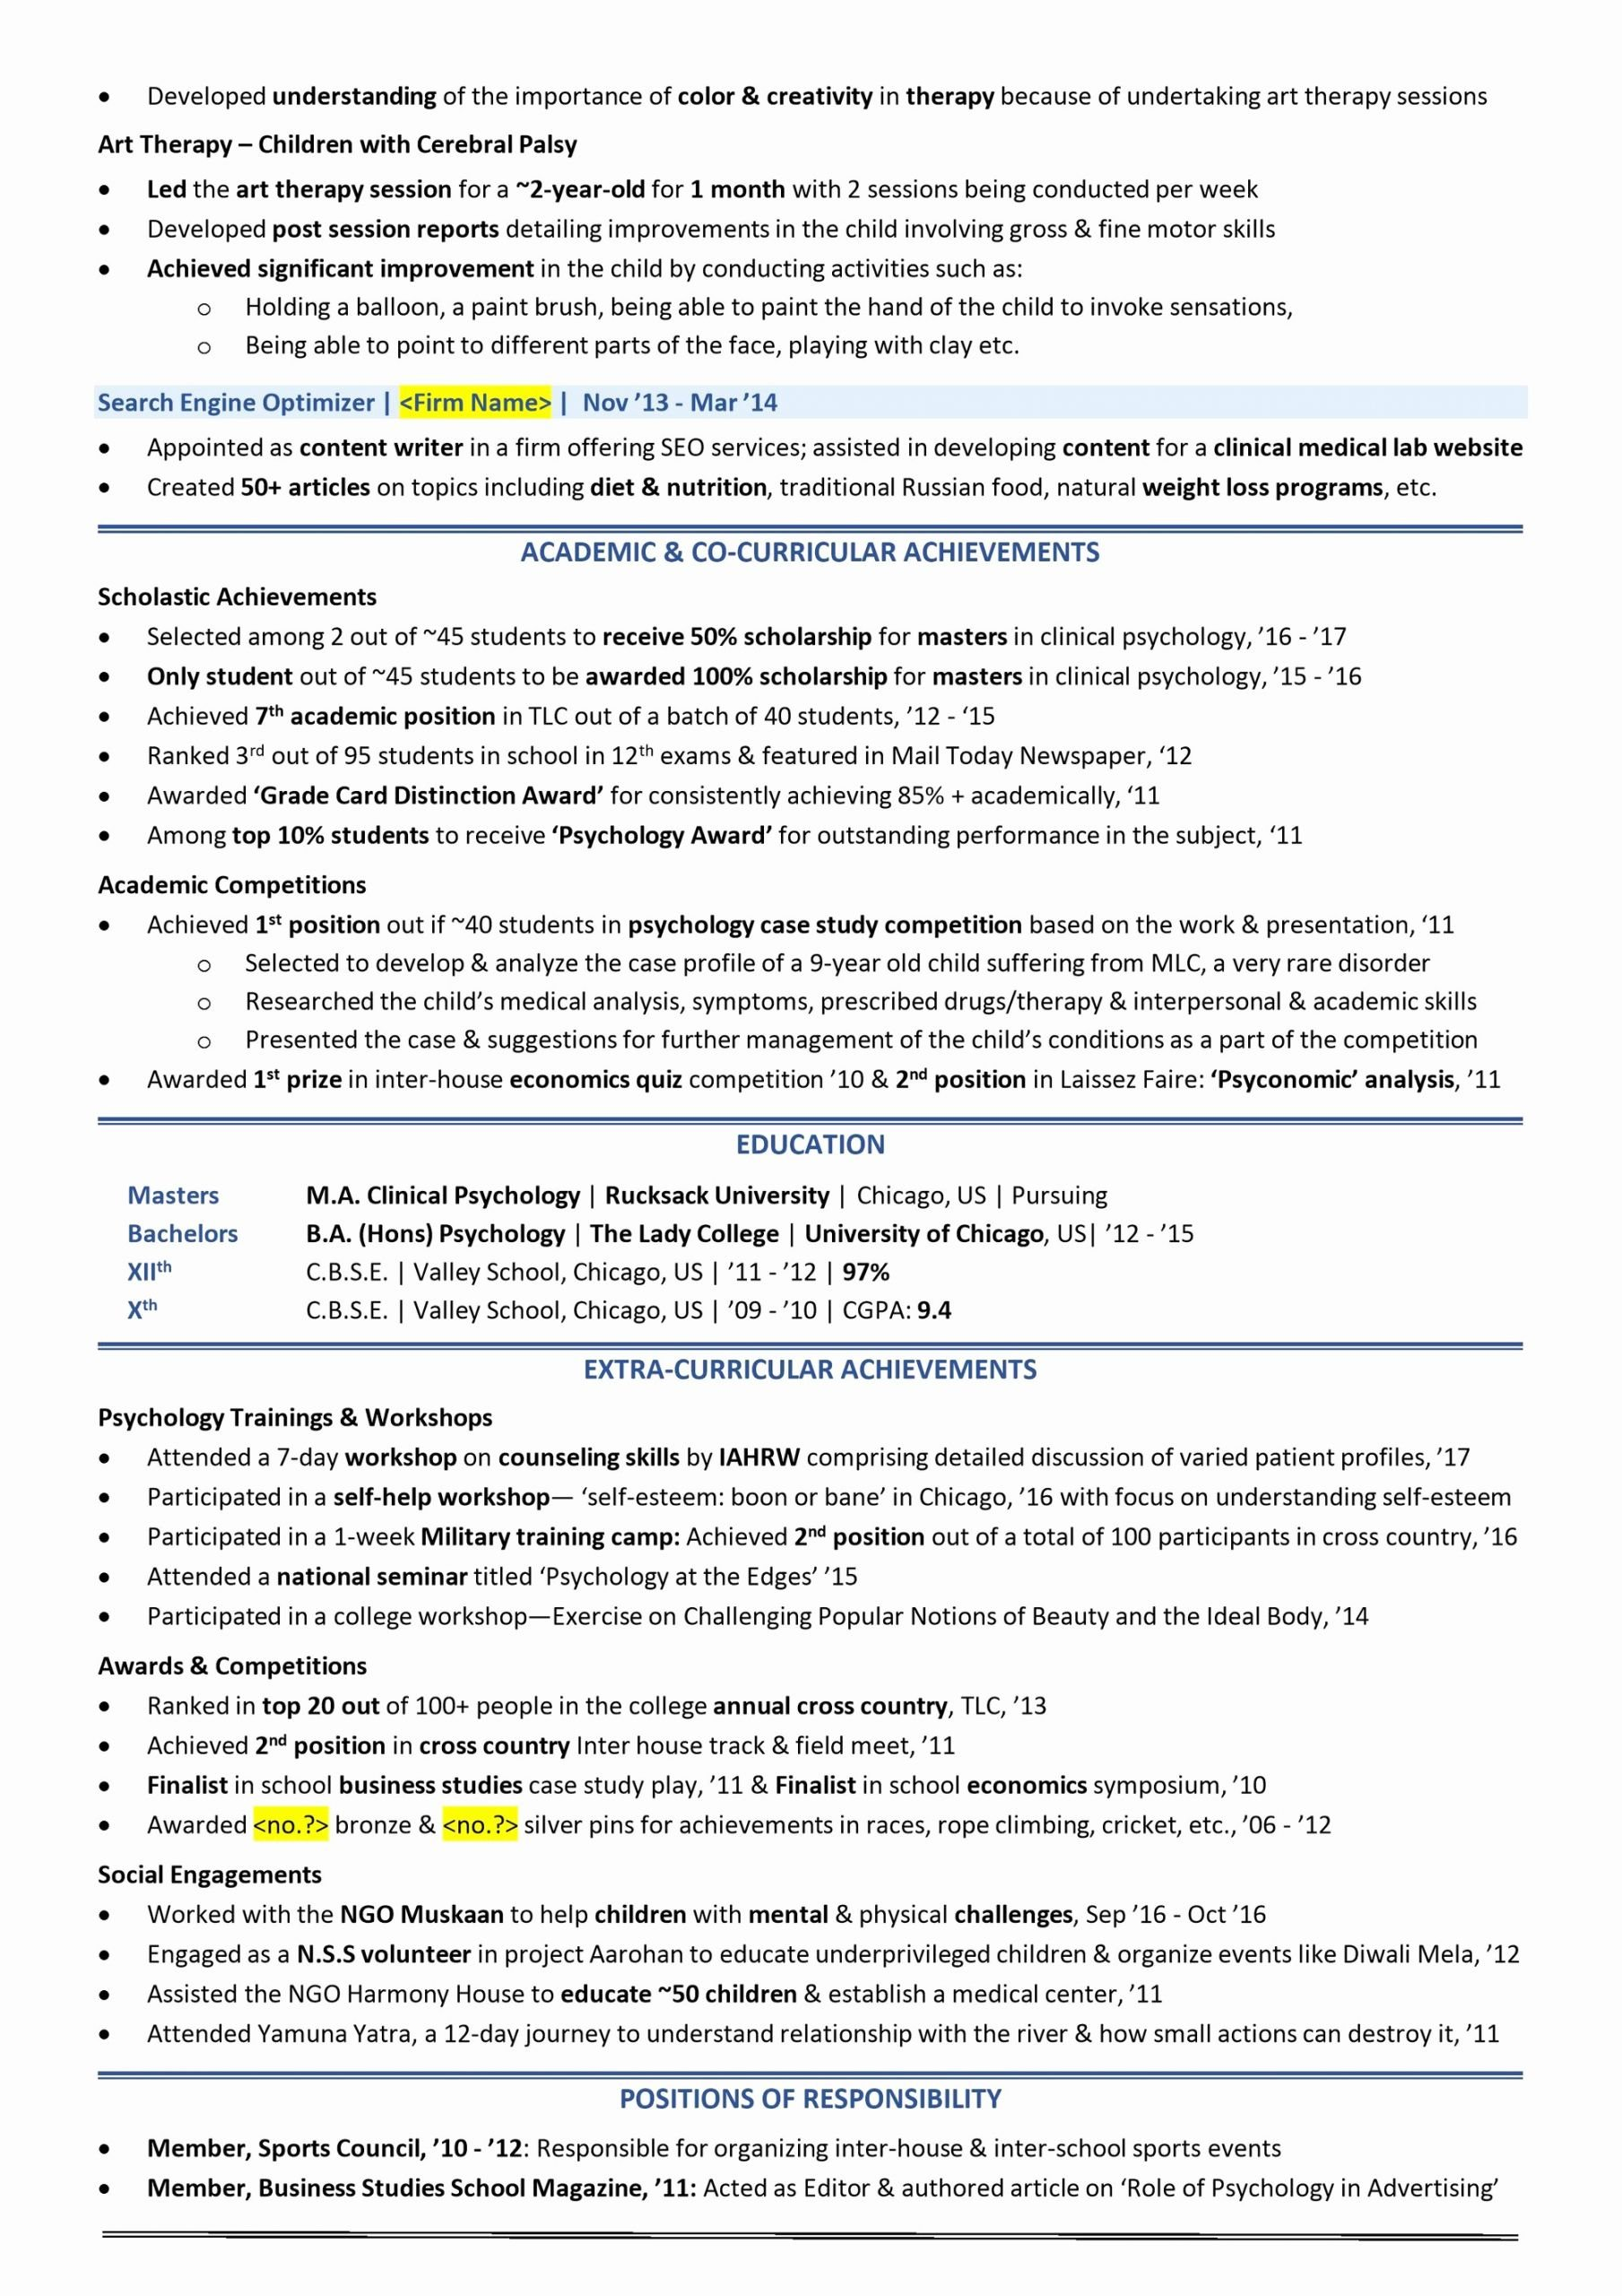 Graduated with Honors Resume New Scholarship Resume [2019 Guide with Scholarship Examples